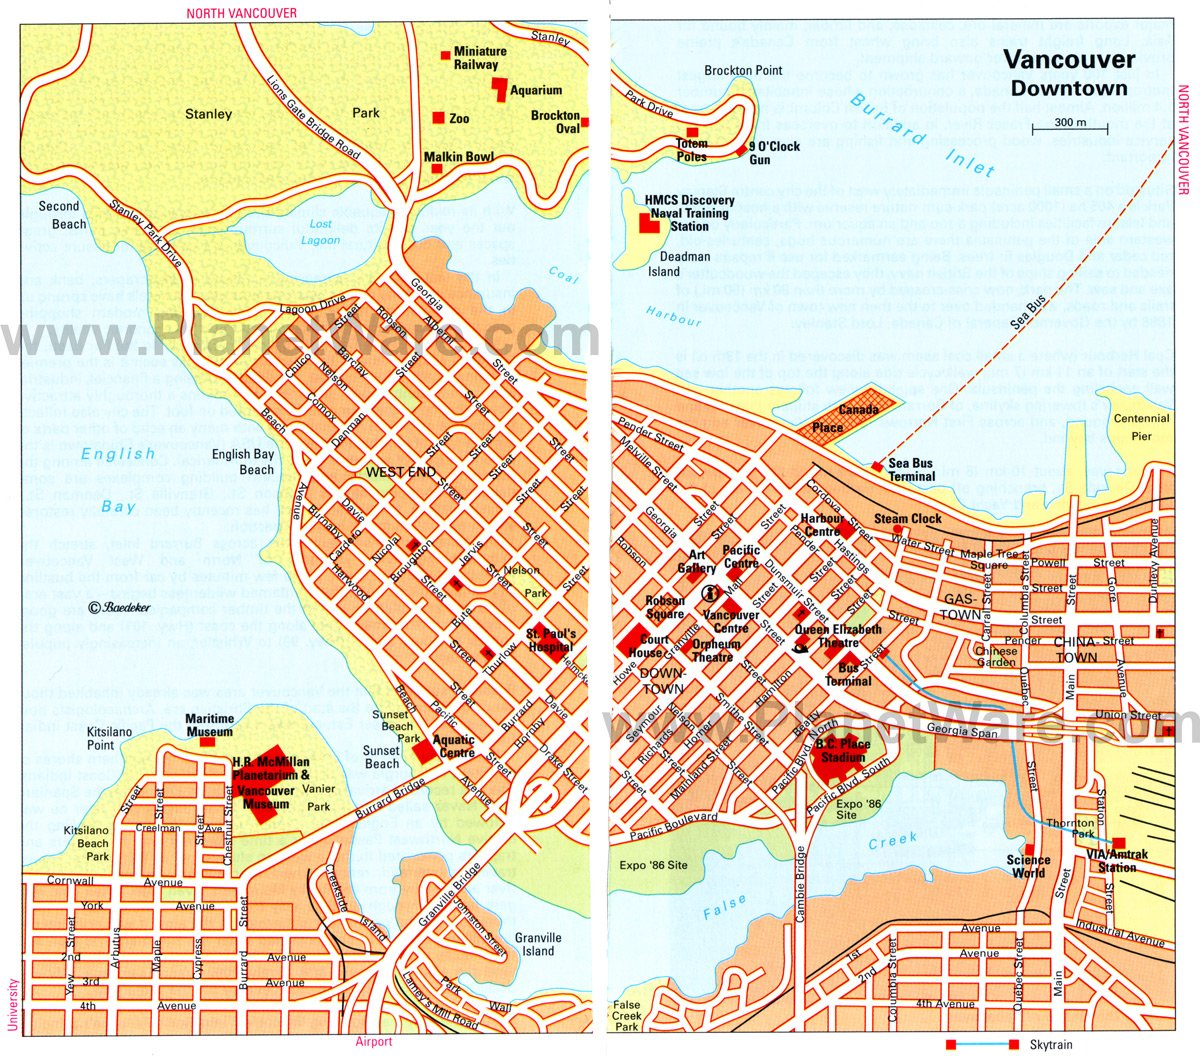 15 TopRated Tourist Attractions in Vancouver – Seattle Tourist Map